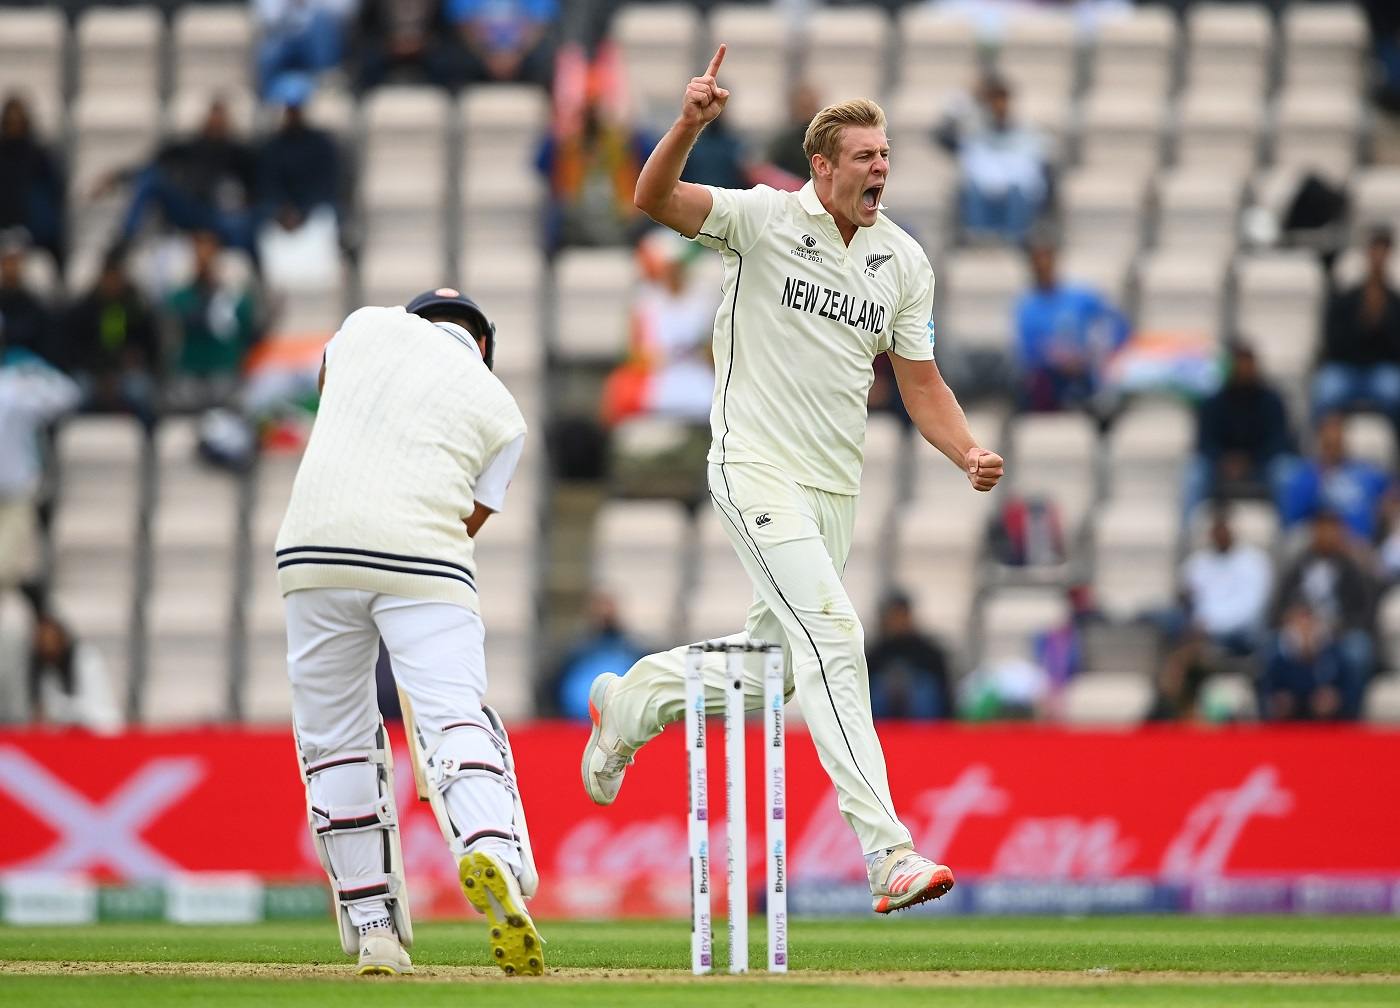 """WTC Final 2021: """"It Was A Good Day For Test Cricket"""" - Kyle Jamieson"""